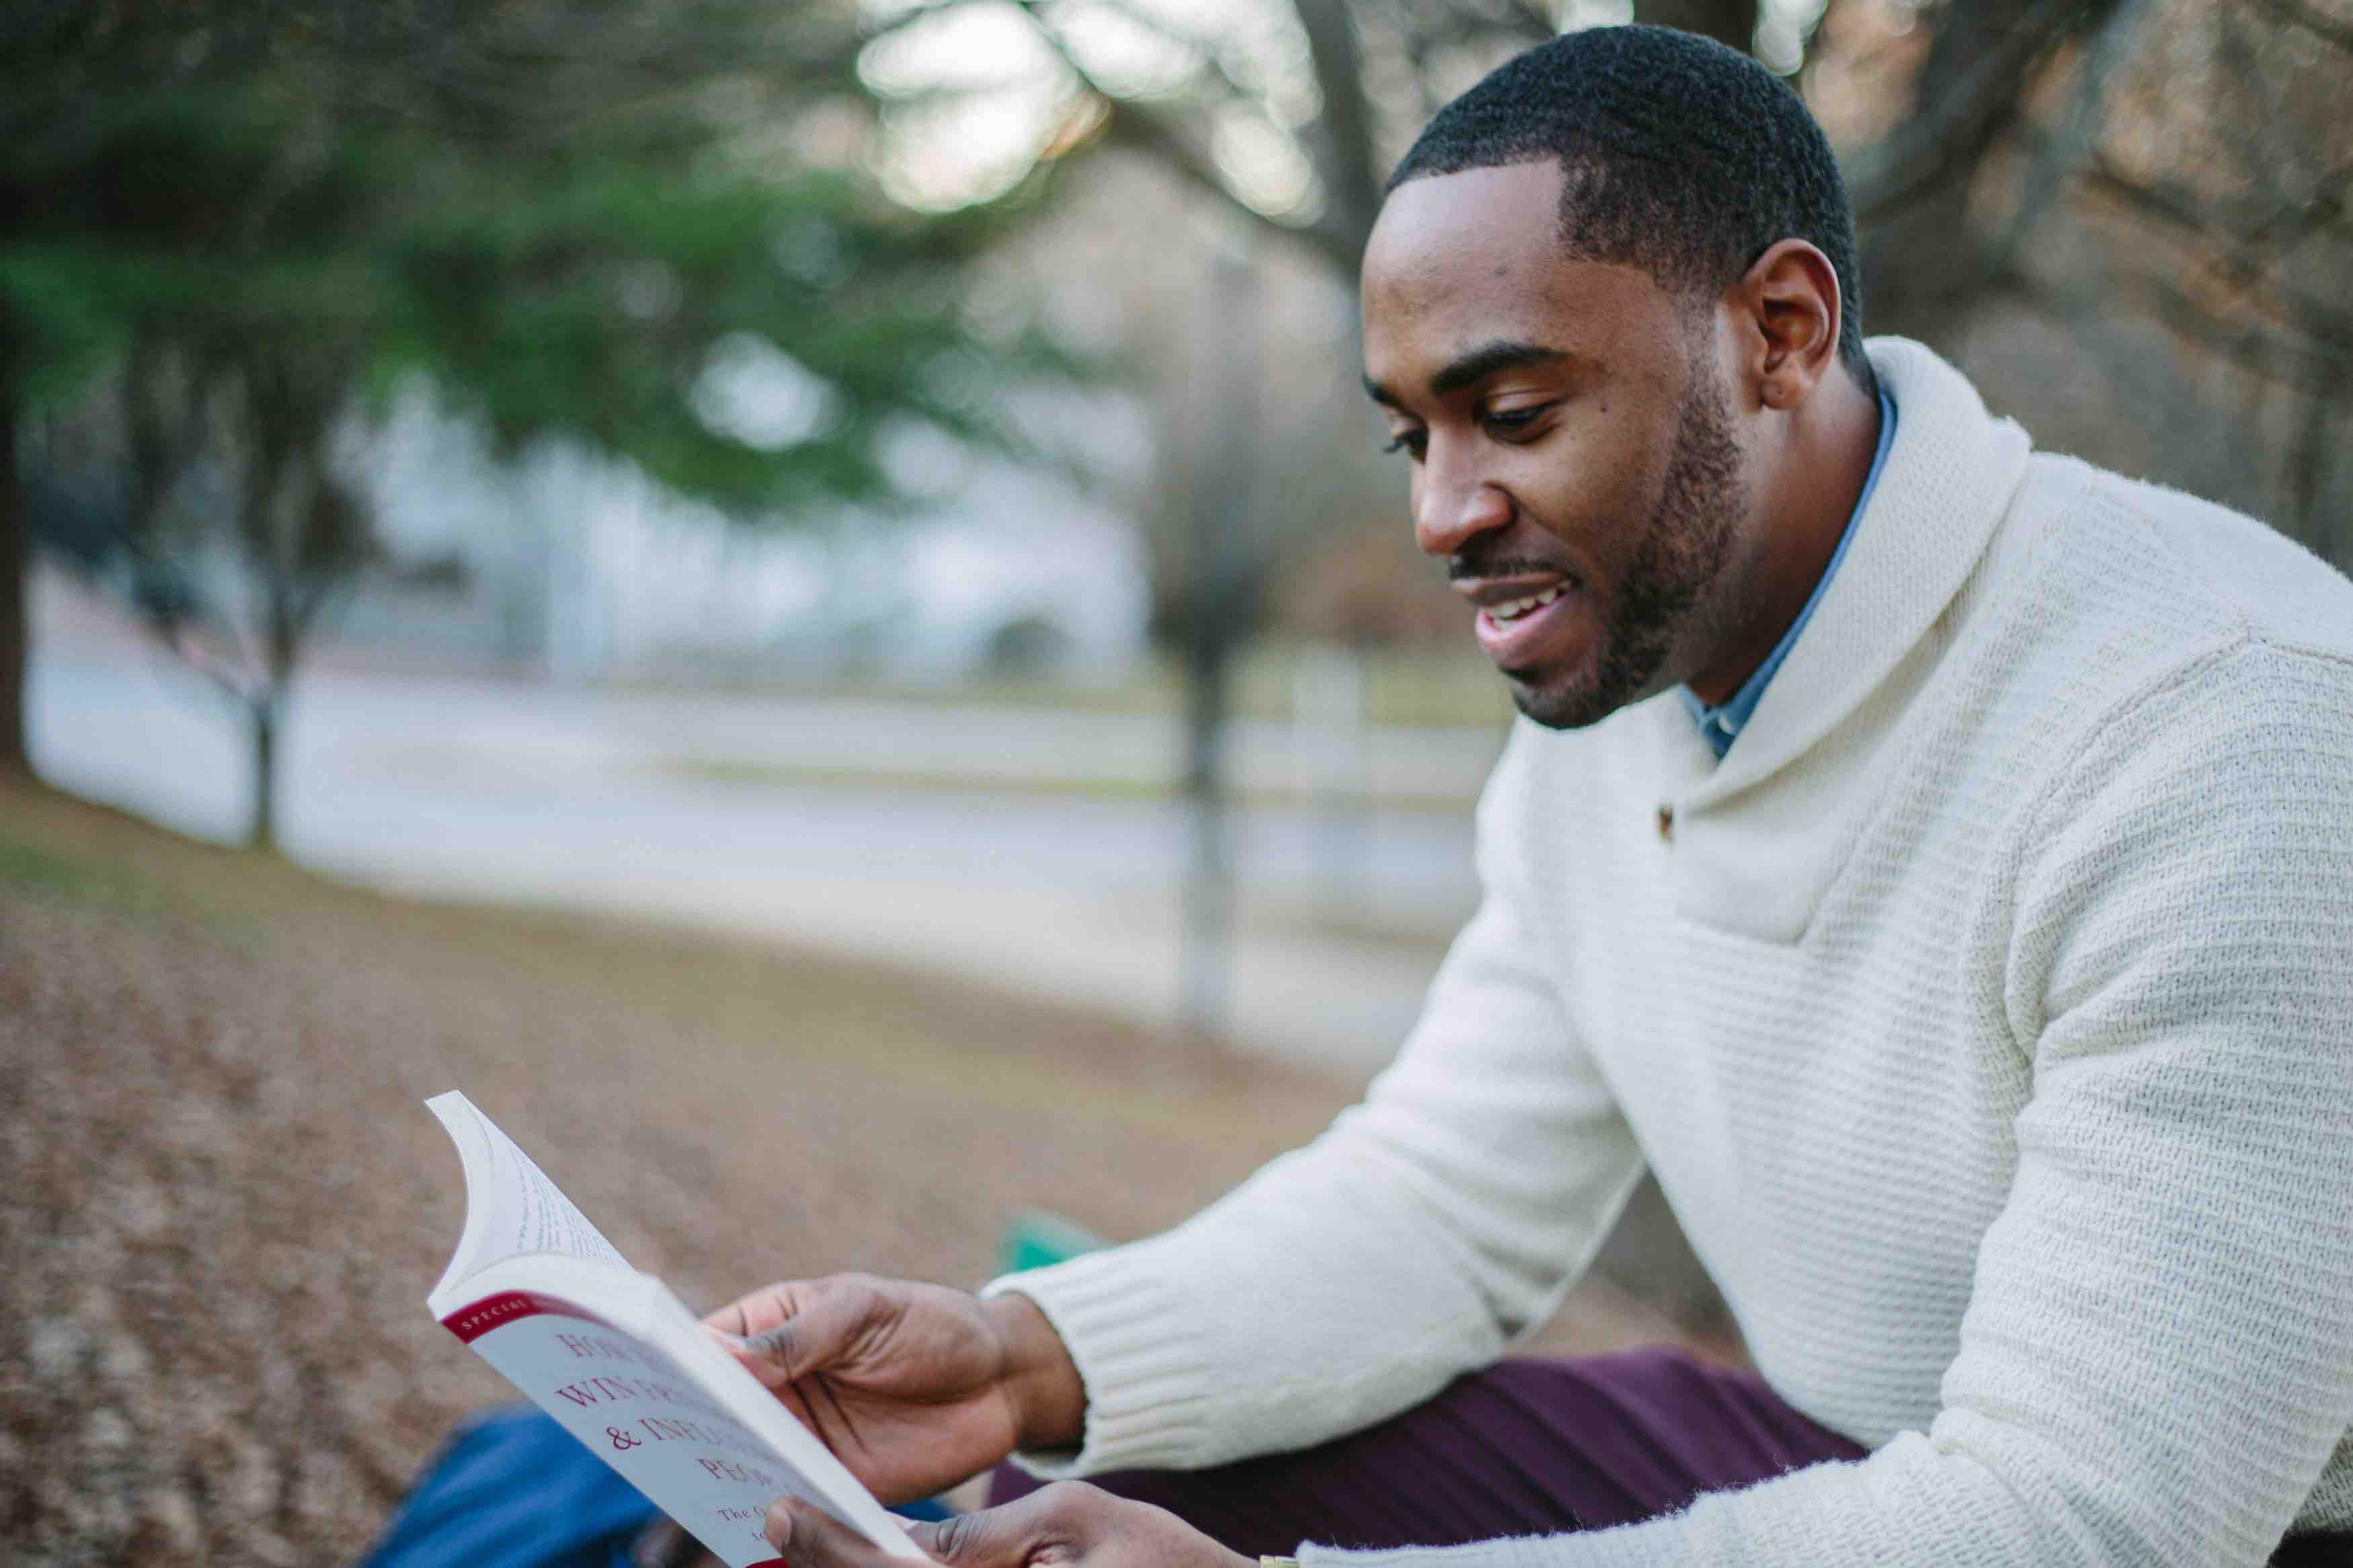 The 6 Best HR Books Every HR Professional Should Read